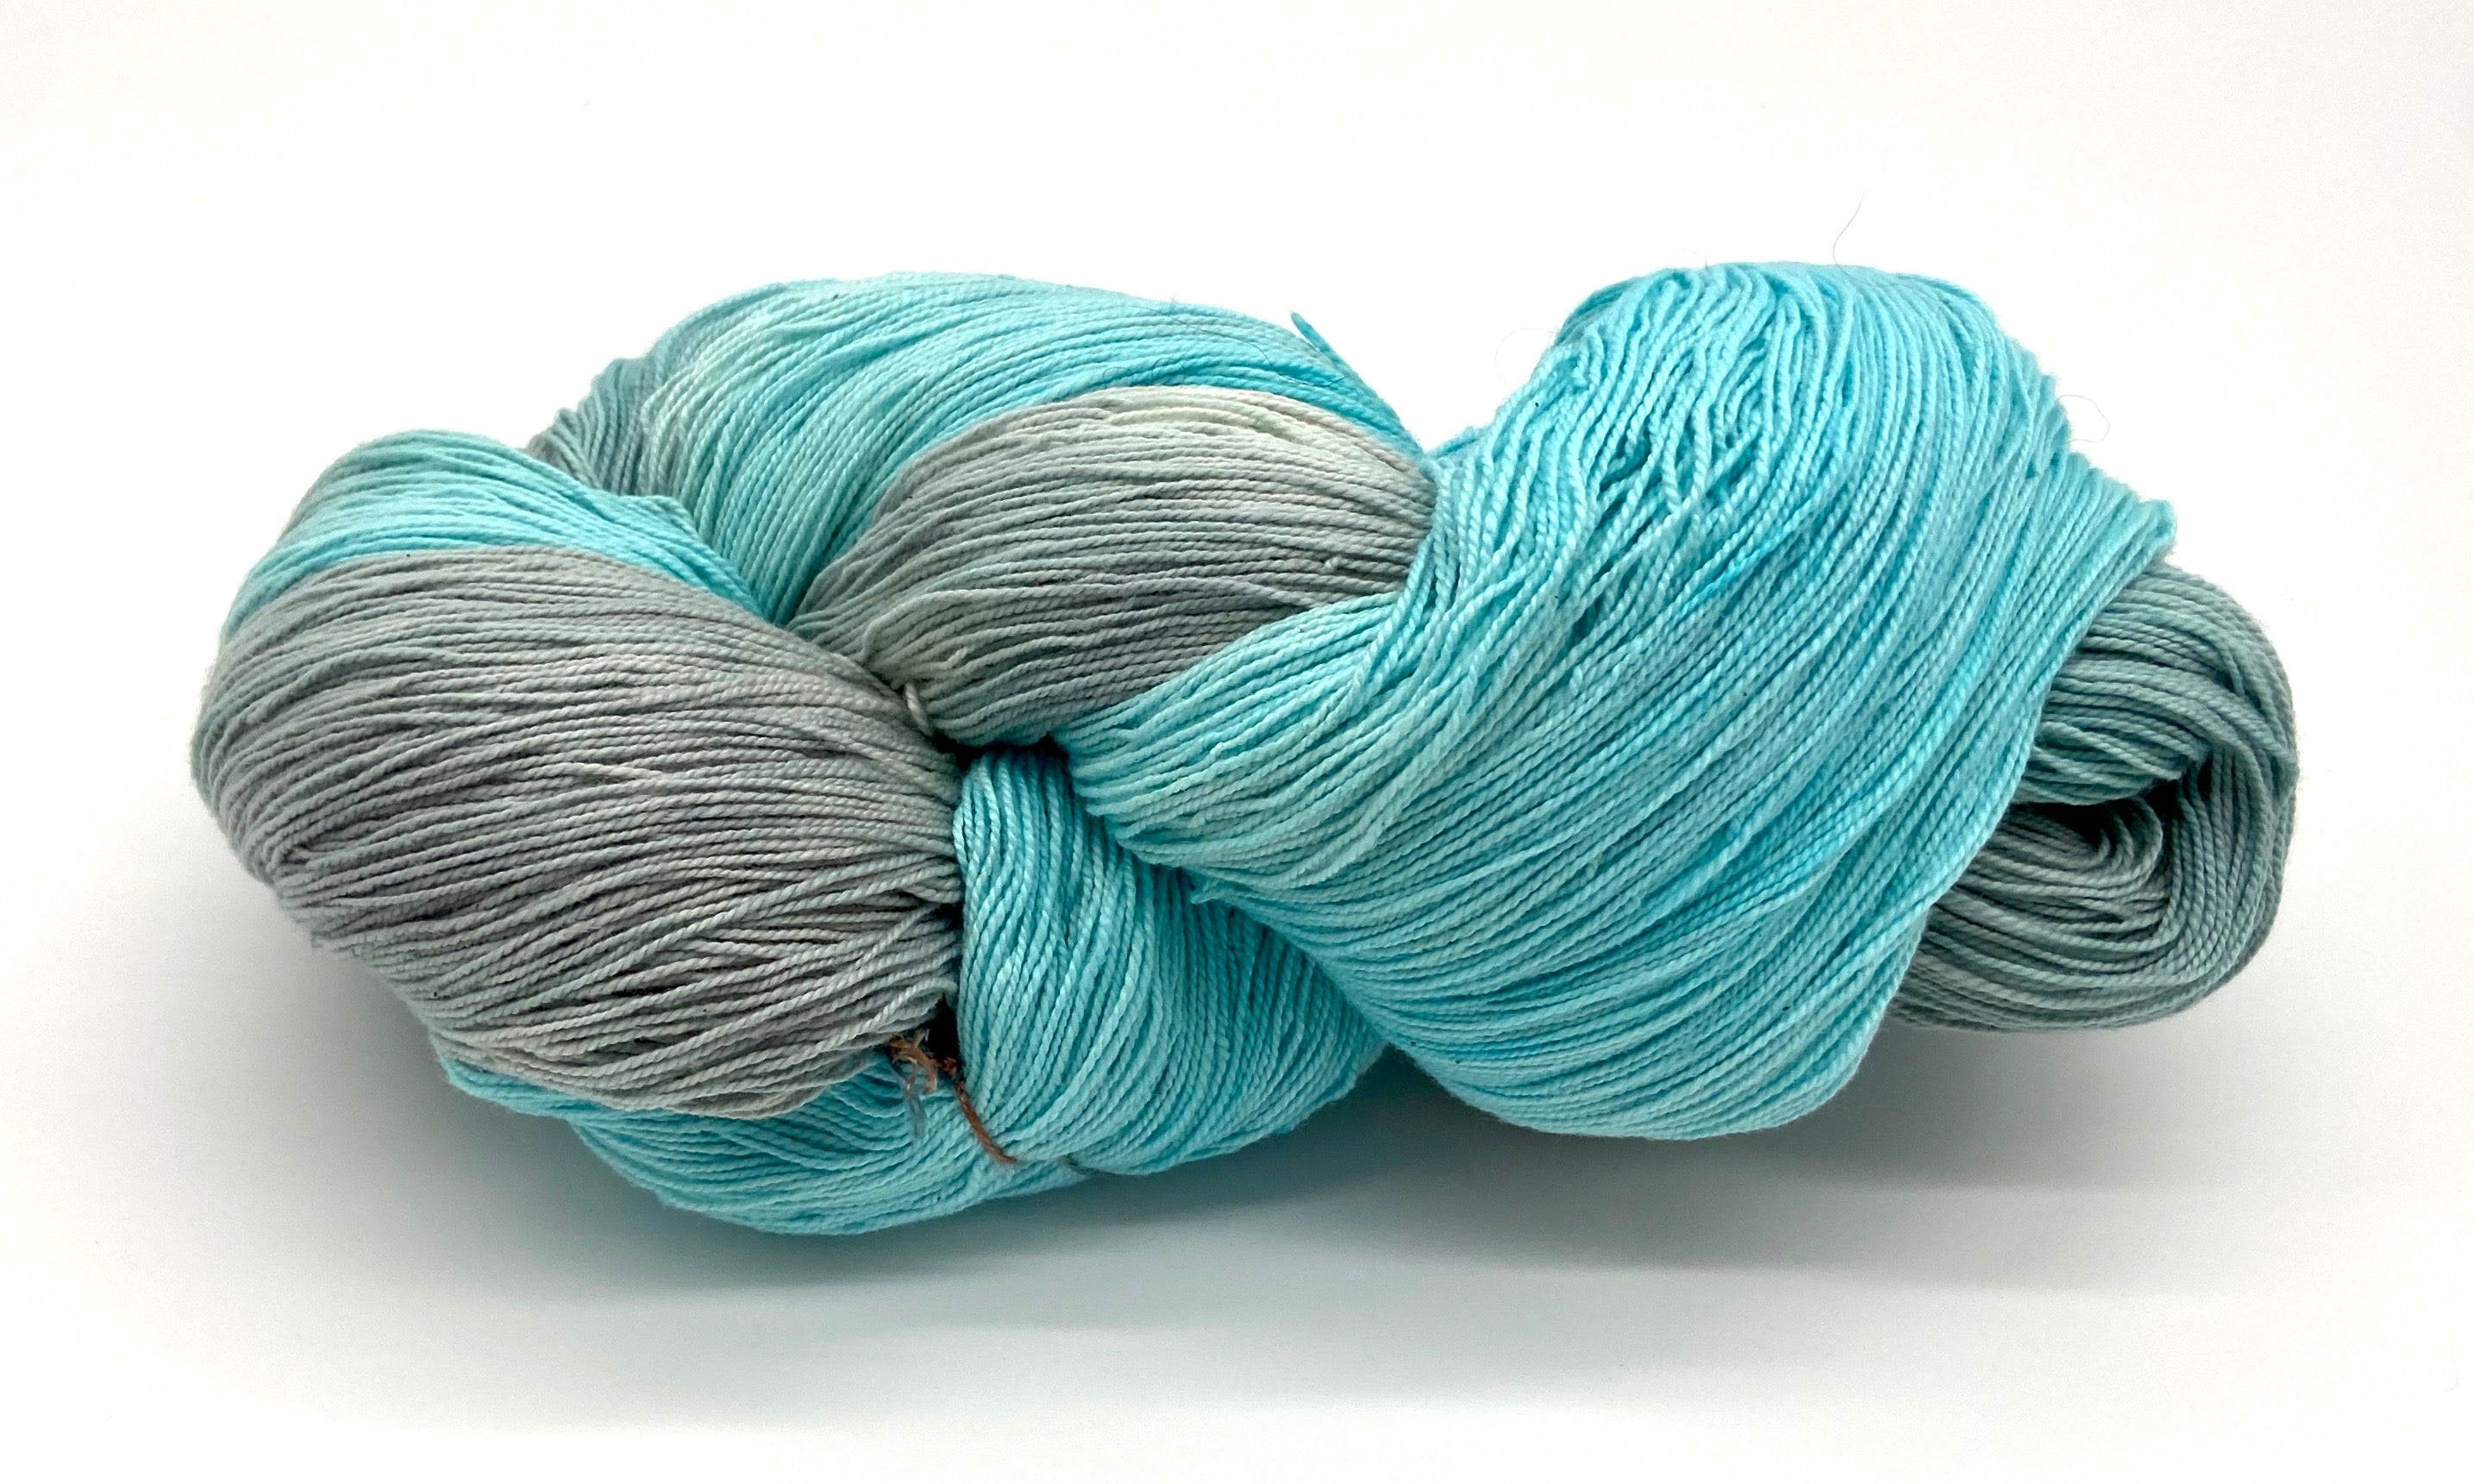 Hand Painted Cotton 8/2 Skeins - Sydney Sogol, hand dyed yarn, hand-painted-cotton-8-2-skeins, hand dyed yarn, hand painted yarn